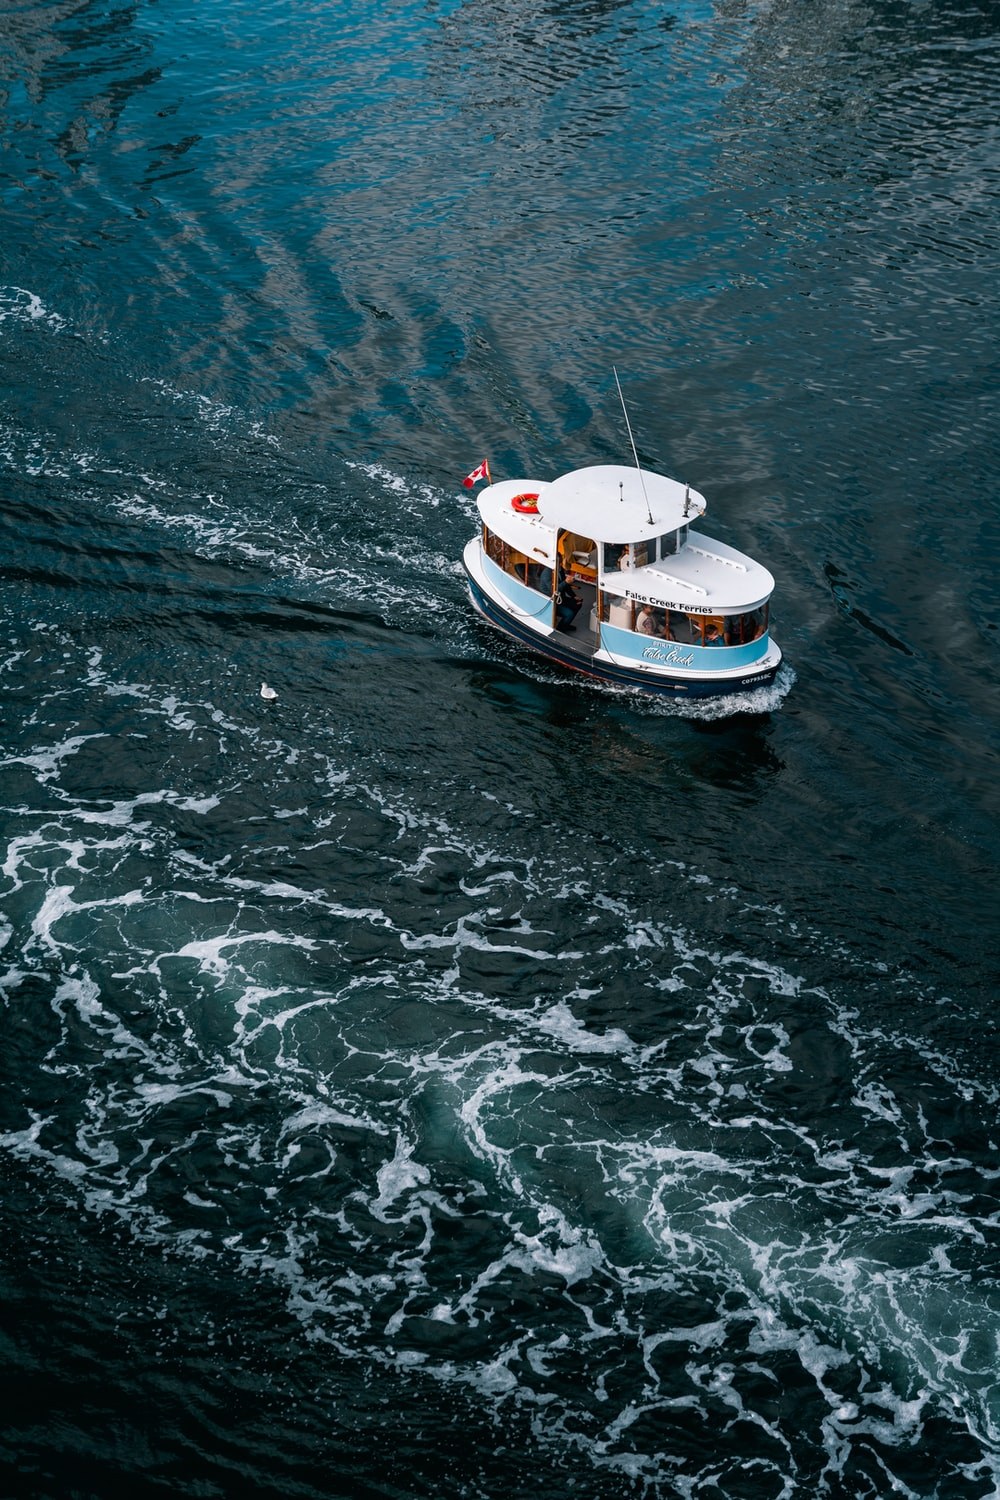 aerial photo of white boat in ocean during daytime